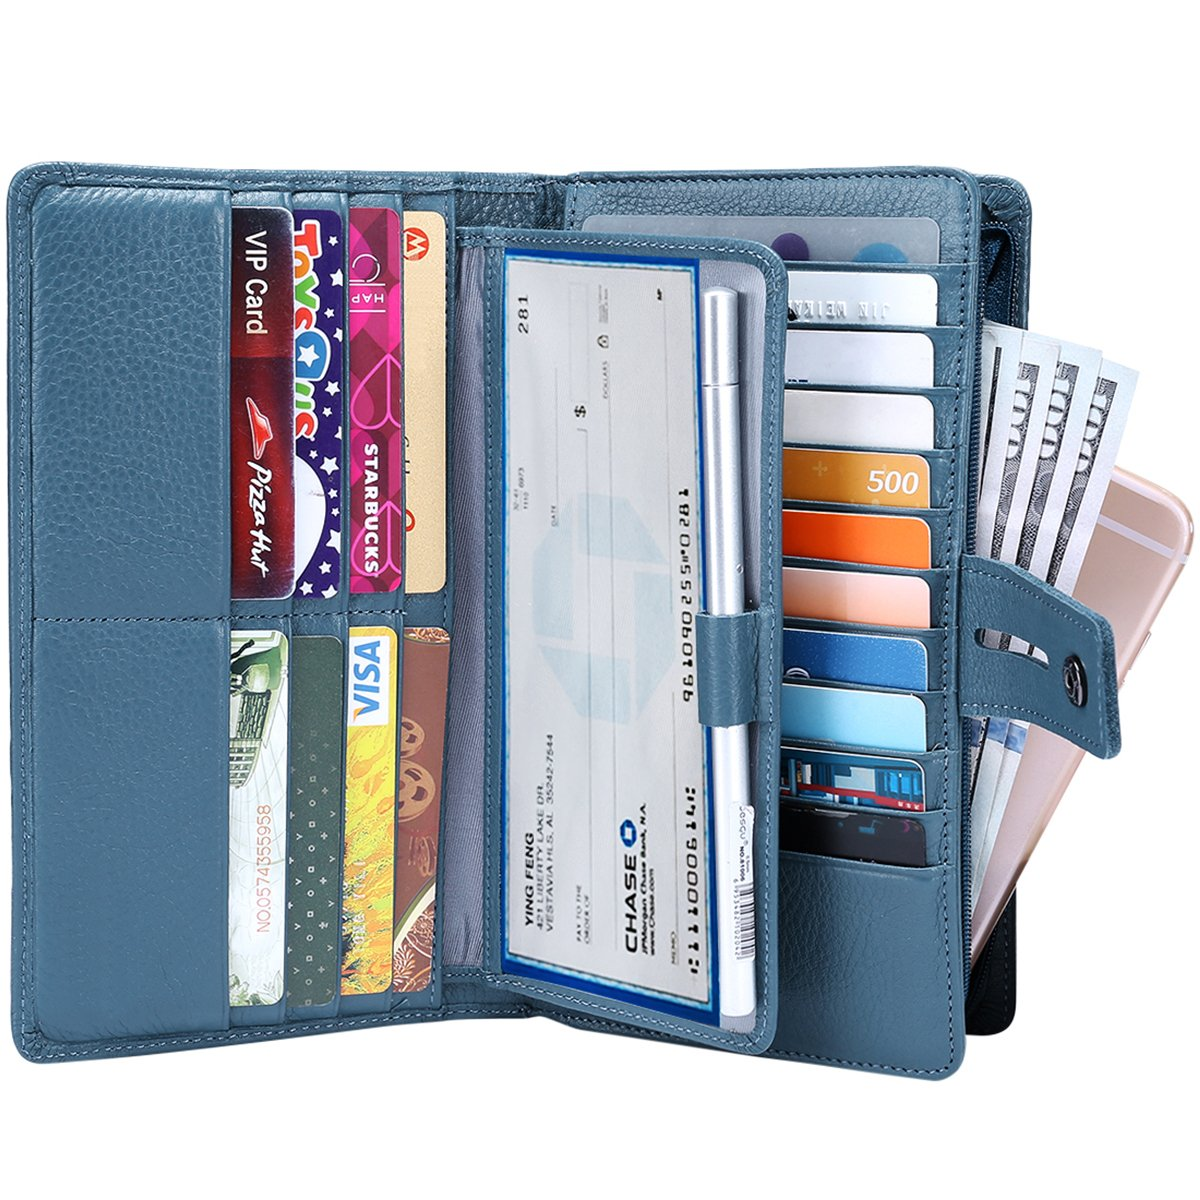 Itslife Women's Big Fat Rfid Blocking Leather wallet clutch organizer with checkbook holder(Blue)